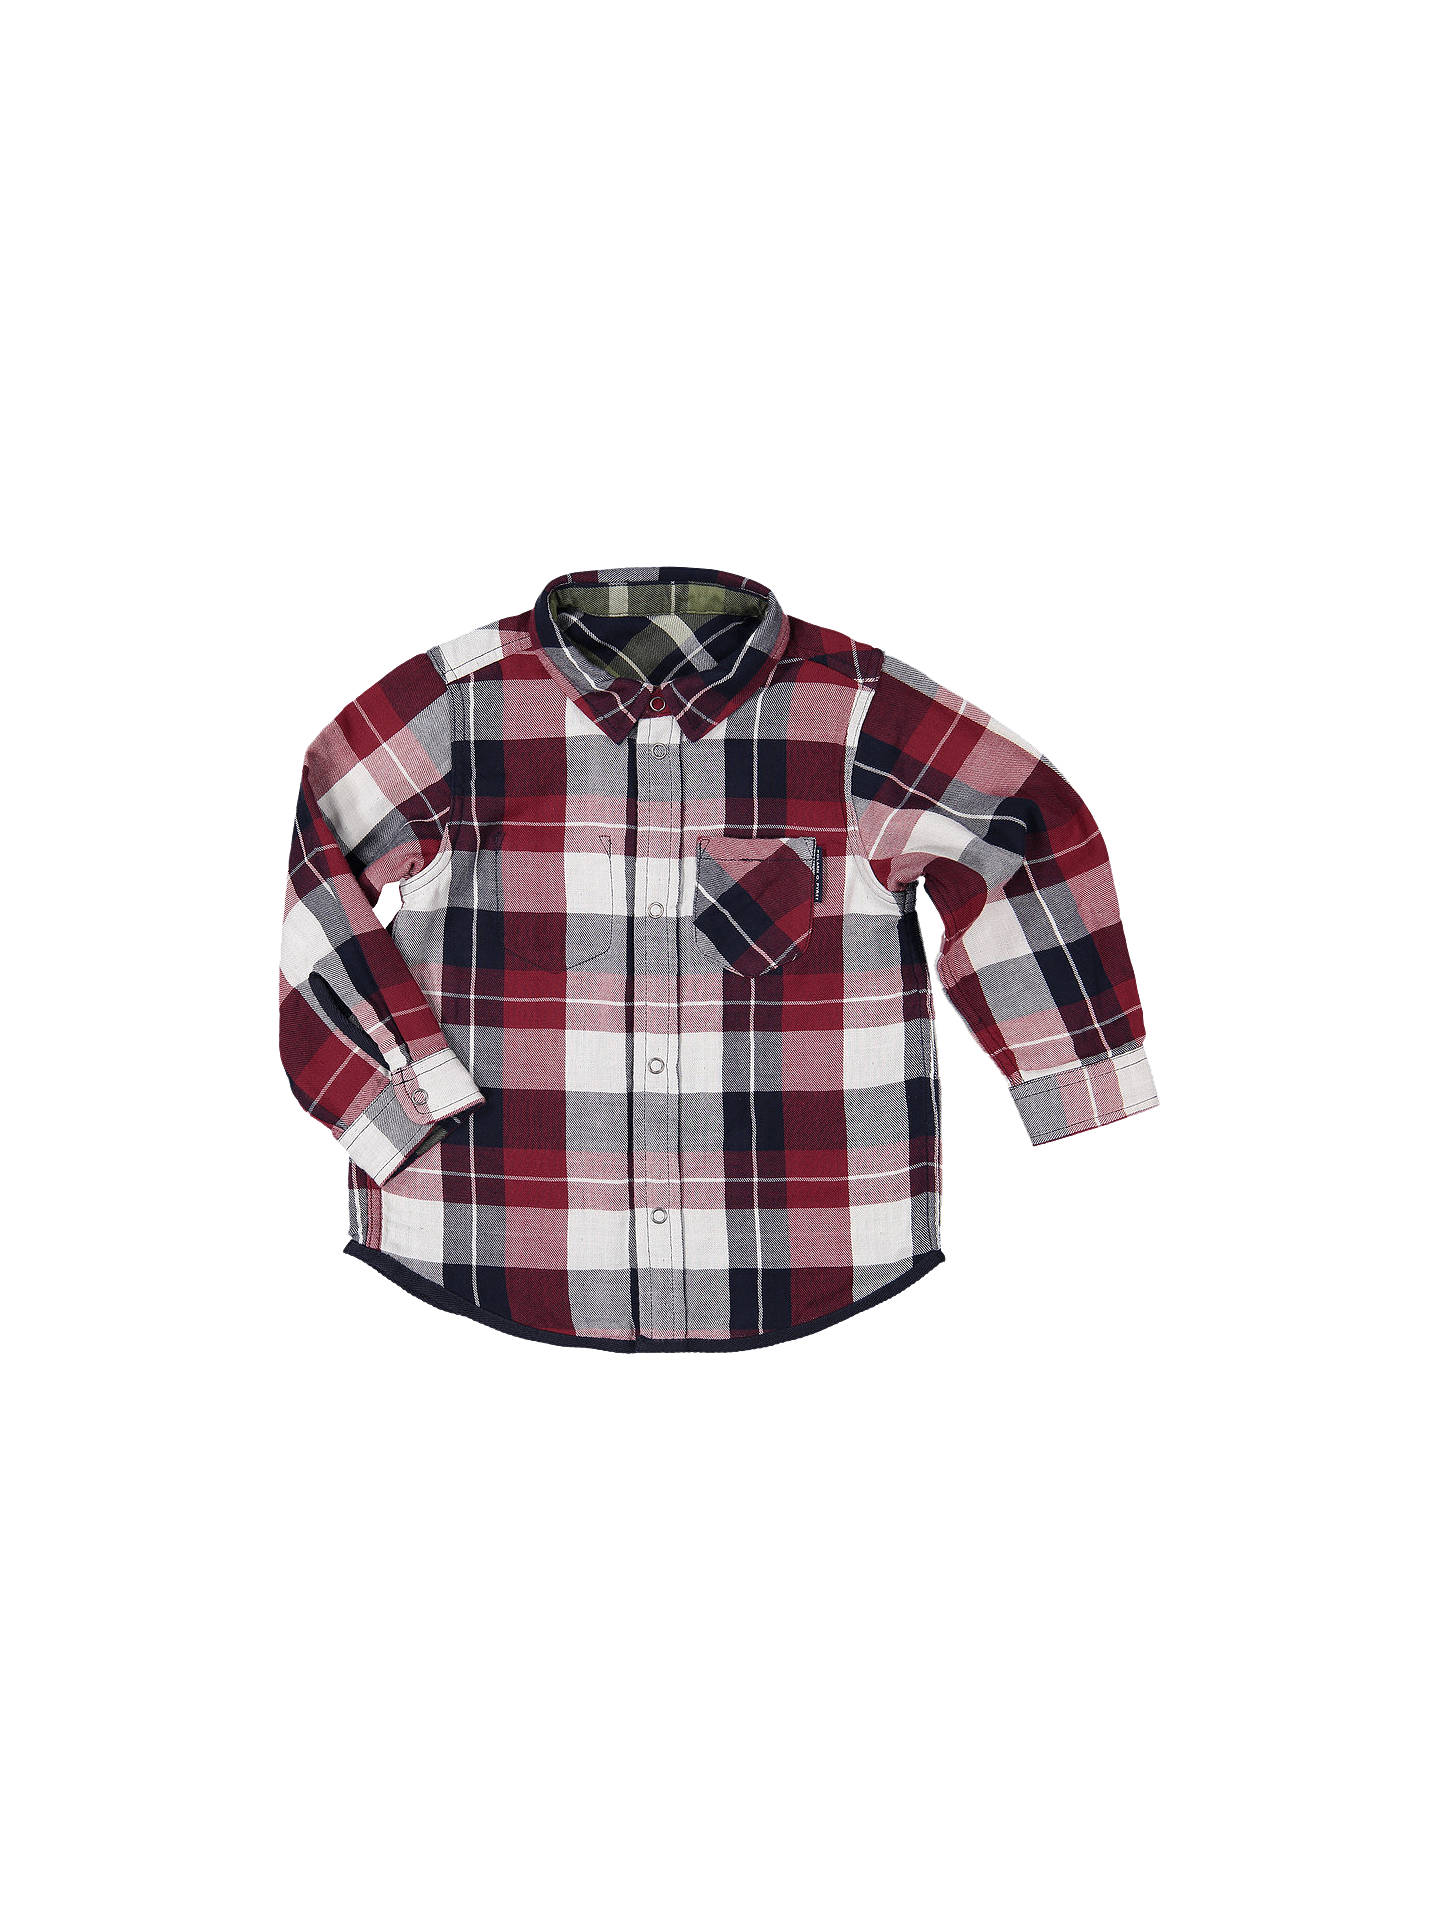 Baby Long Sleeve Check Shirts Plaid Blouse Casual Tops Cotton Outfits 6-9 Months